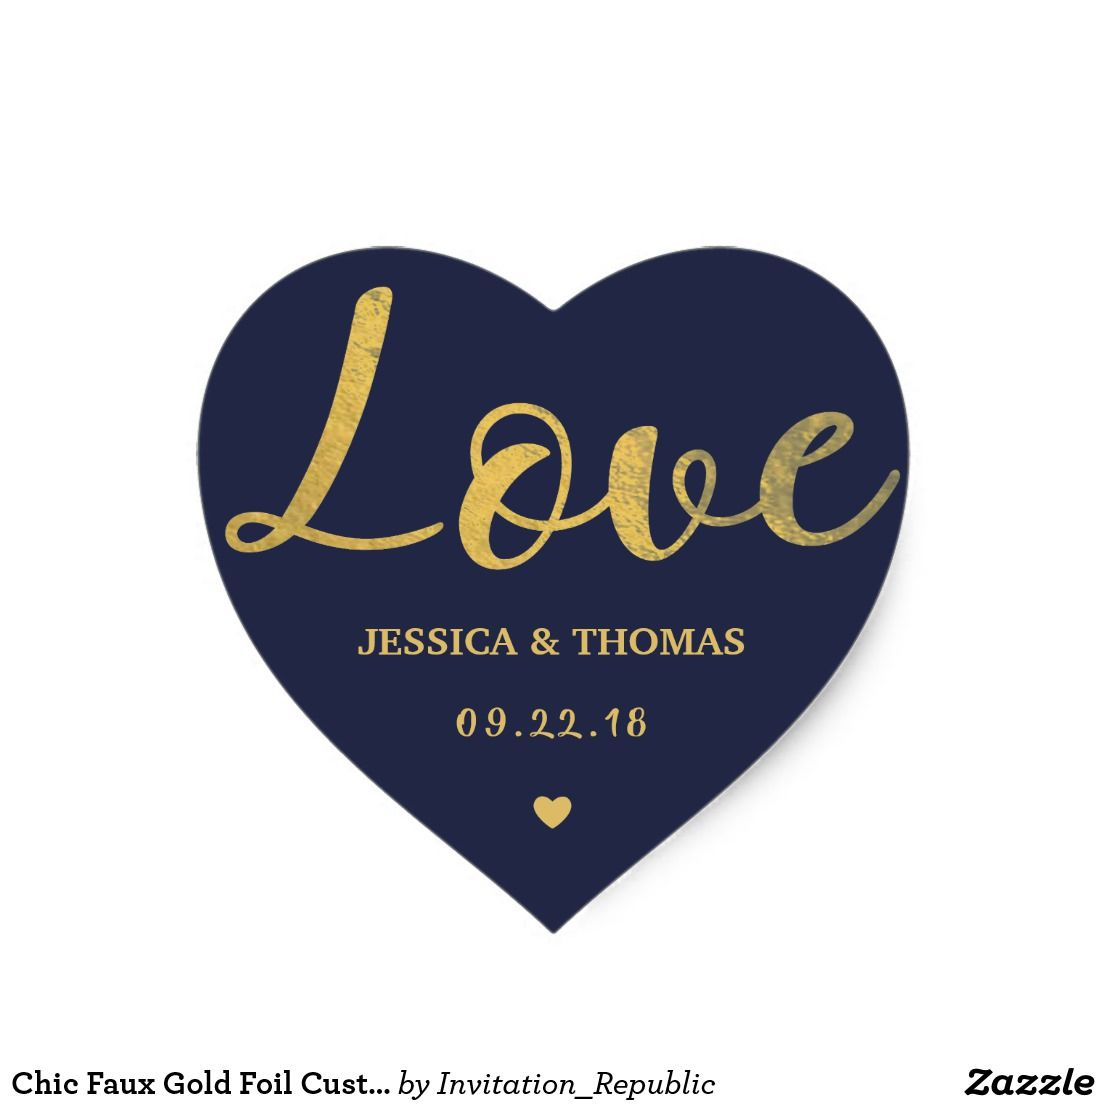 Chic faux gold foil custom wedding love template heart sticker